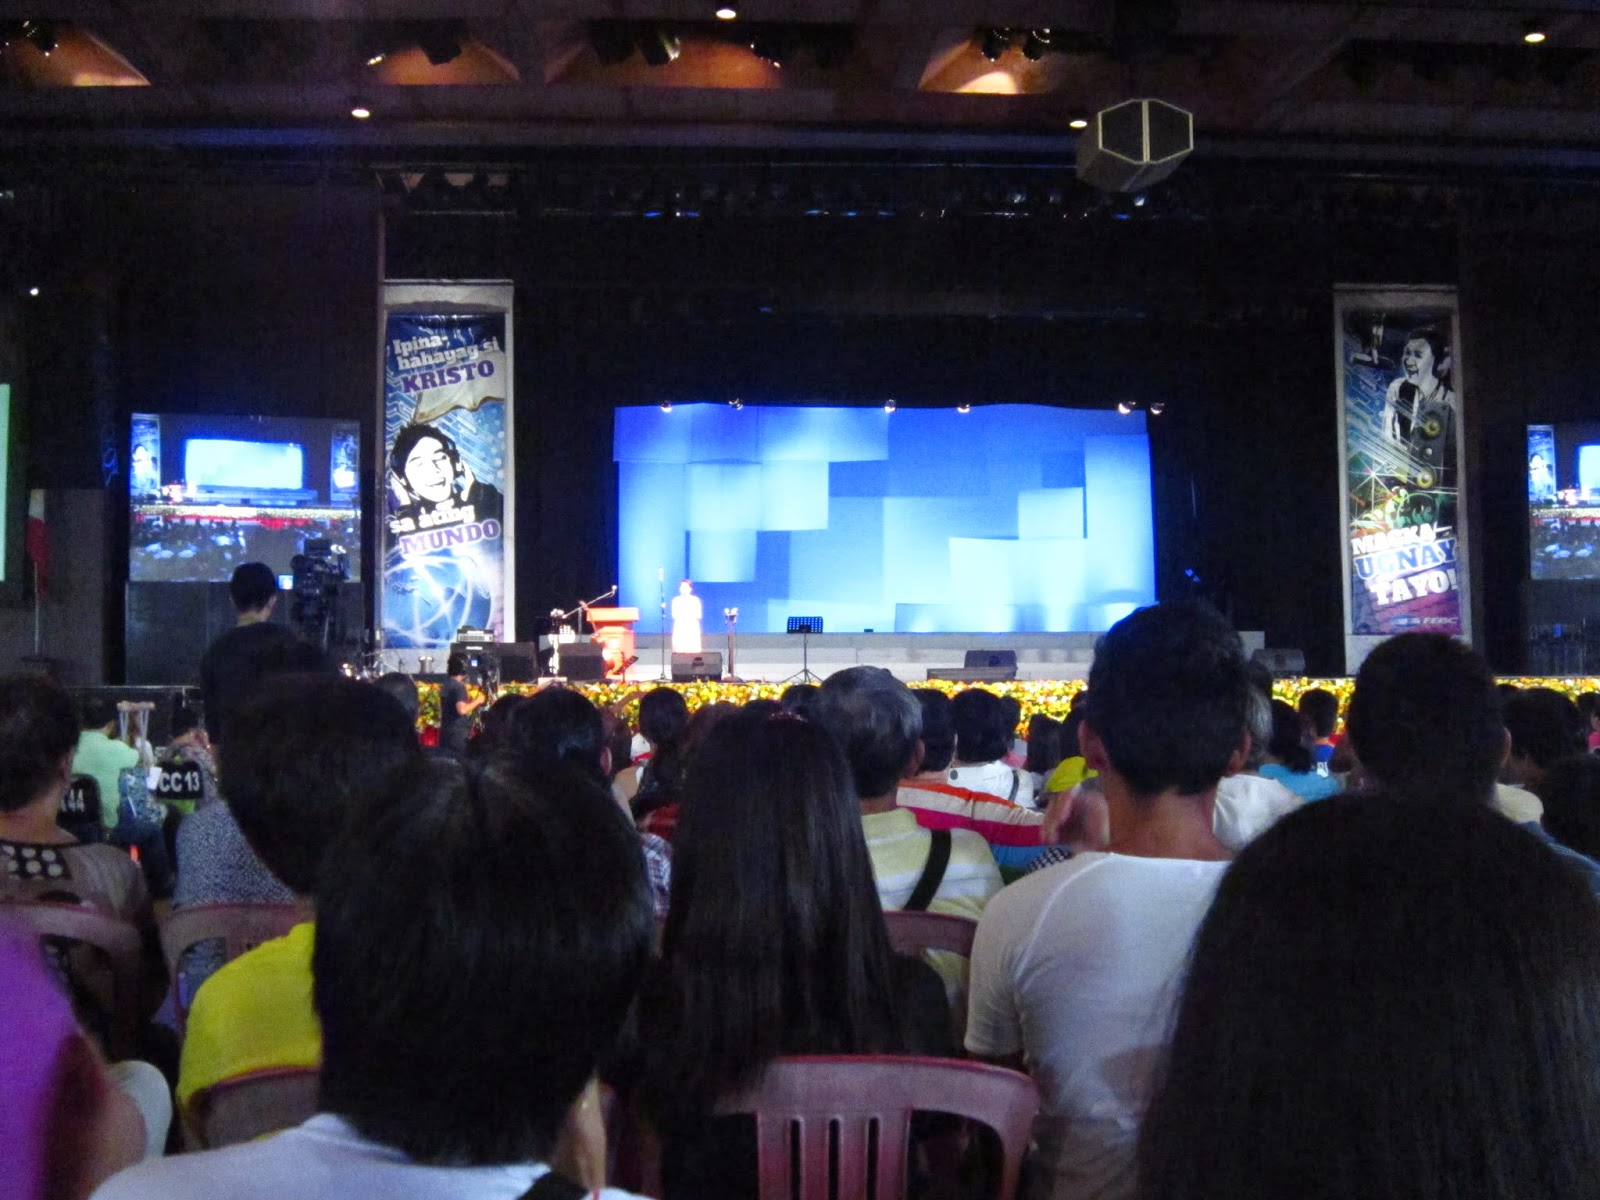 FEBC PHILLIPPINES 66TH ANNIVERSARY